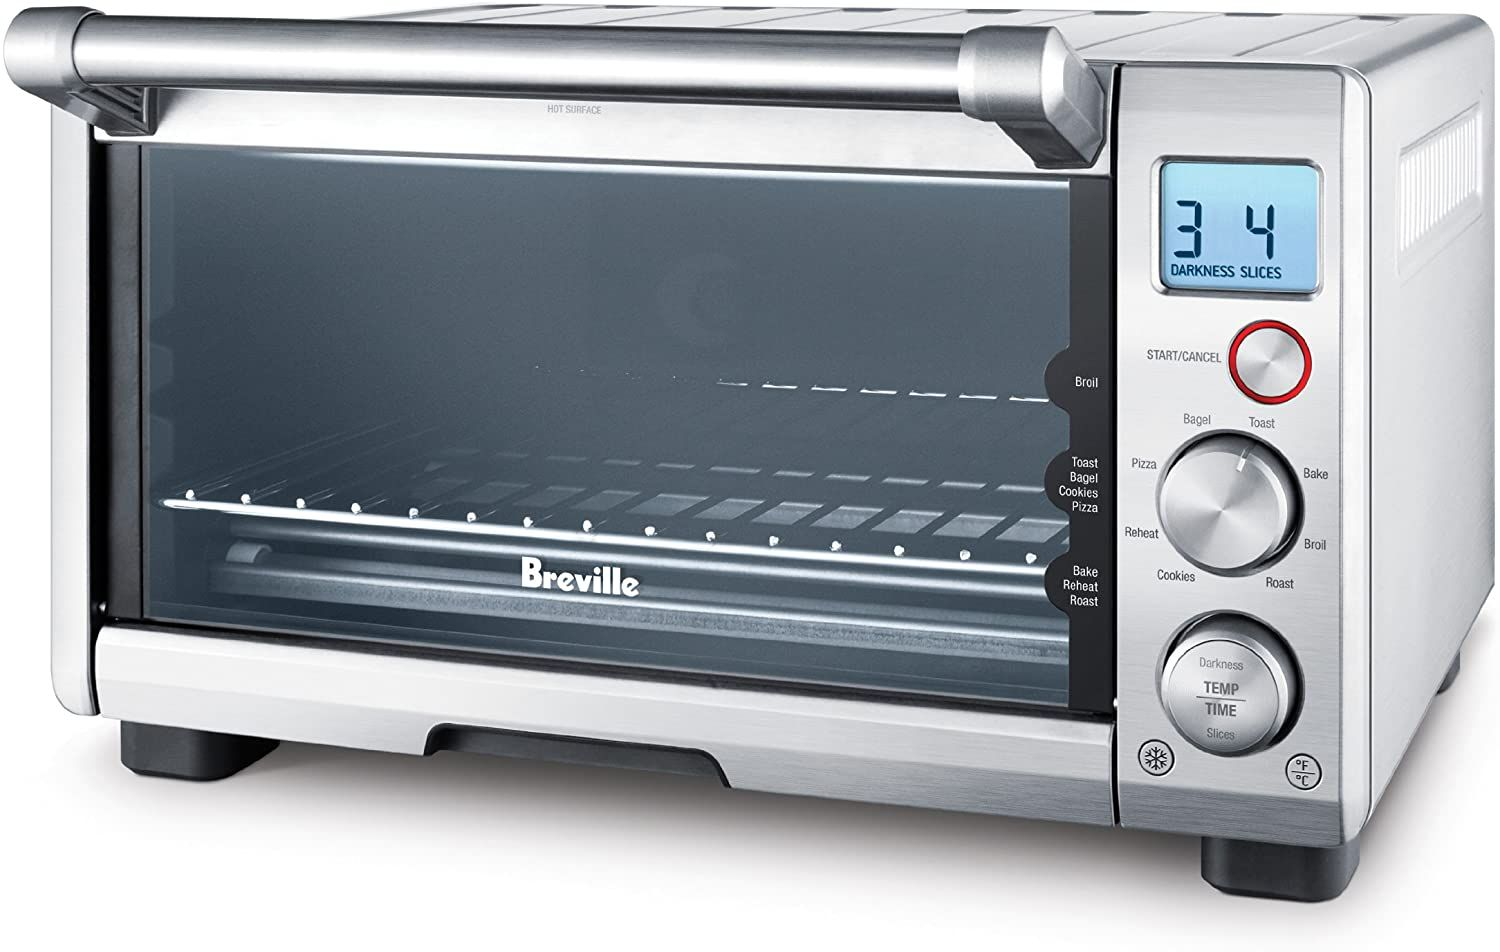 Breville The Compact Smart Oven Countertop Electric Toaster Oven